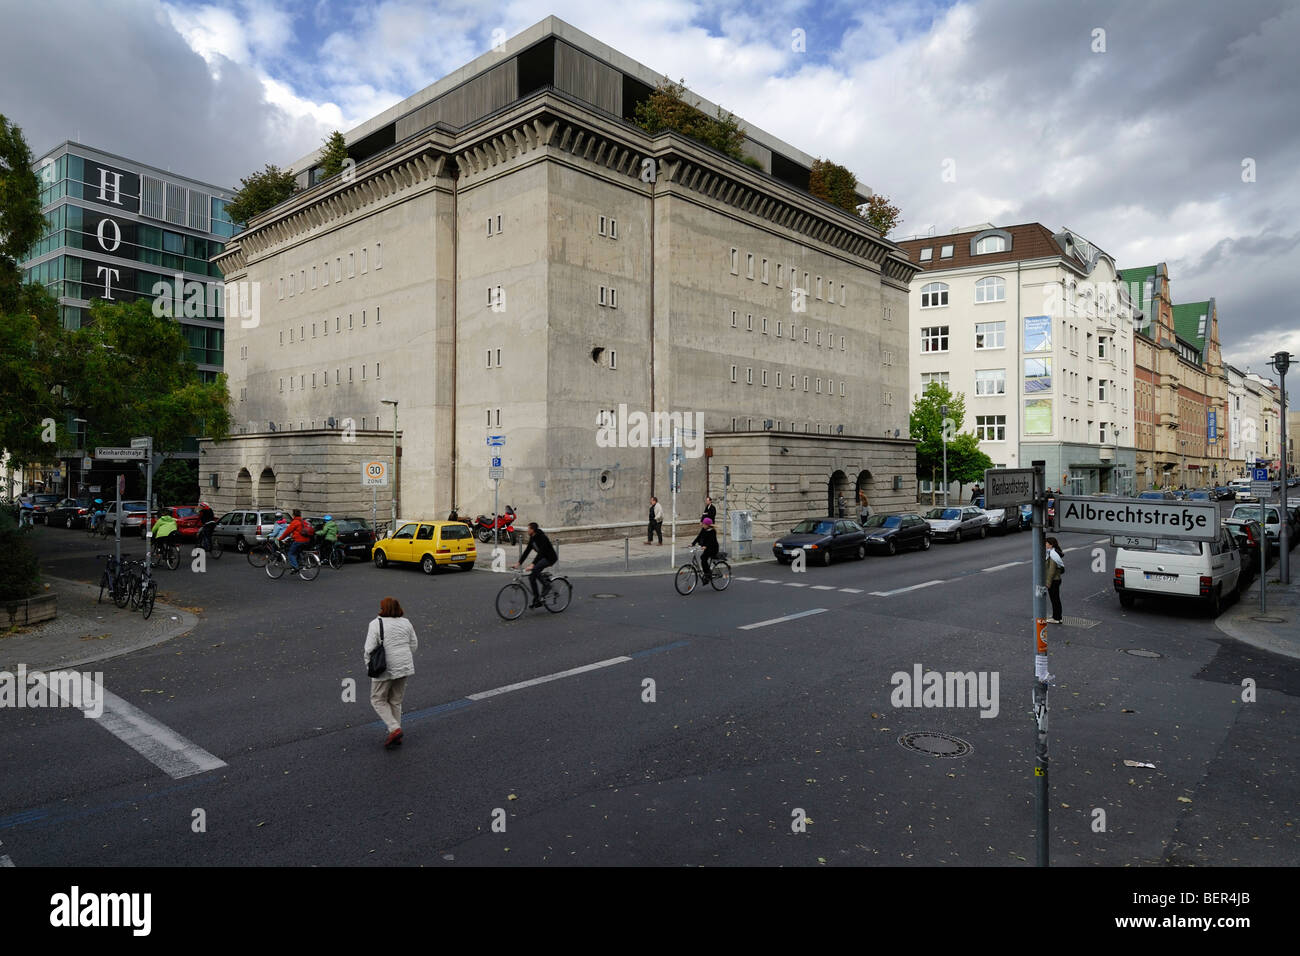 Berlin. Germany. WWII concrete bunker on Albrechtstrasse / Reinhardtstrasse now the Sammlung Boros art gallery. - Stock Image